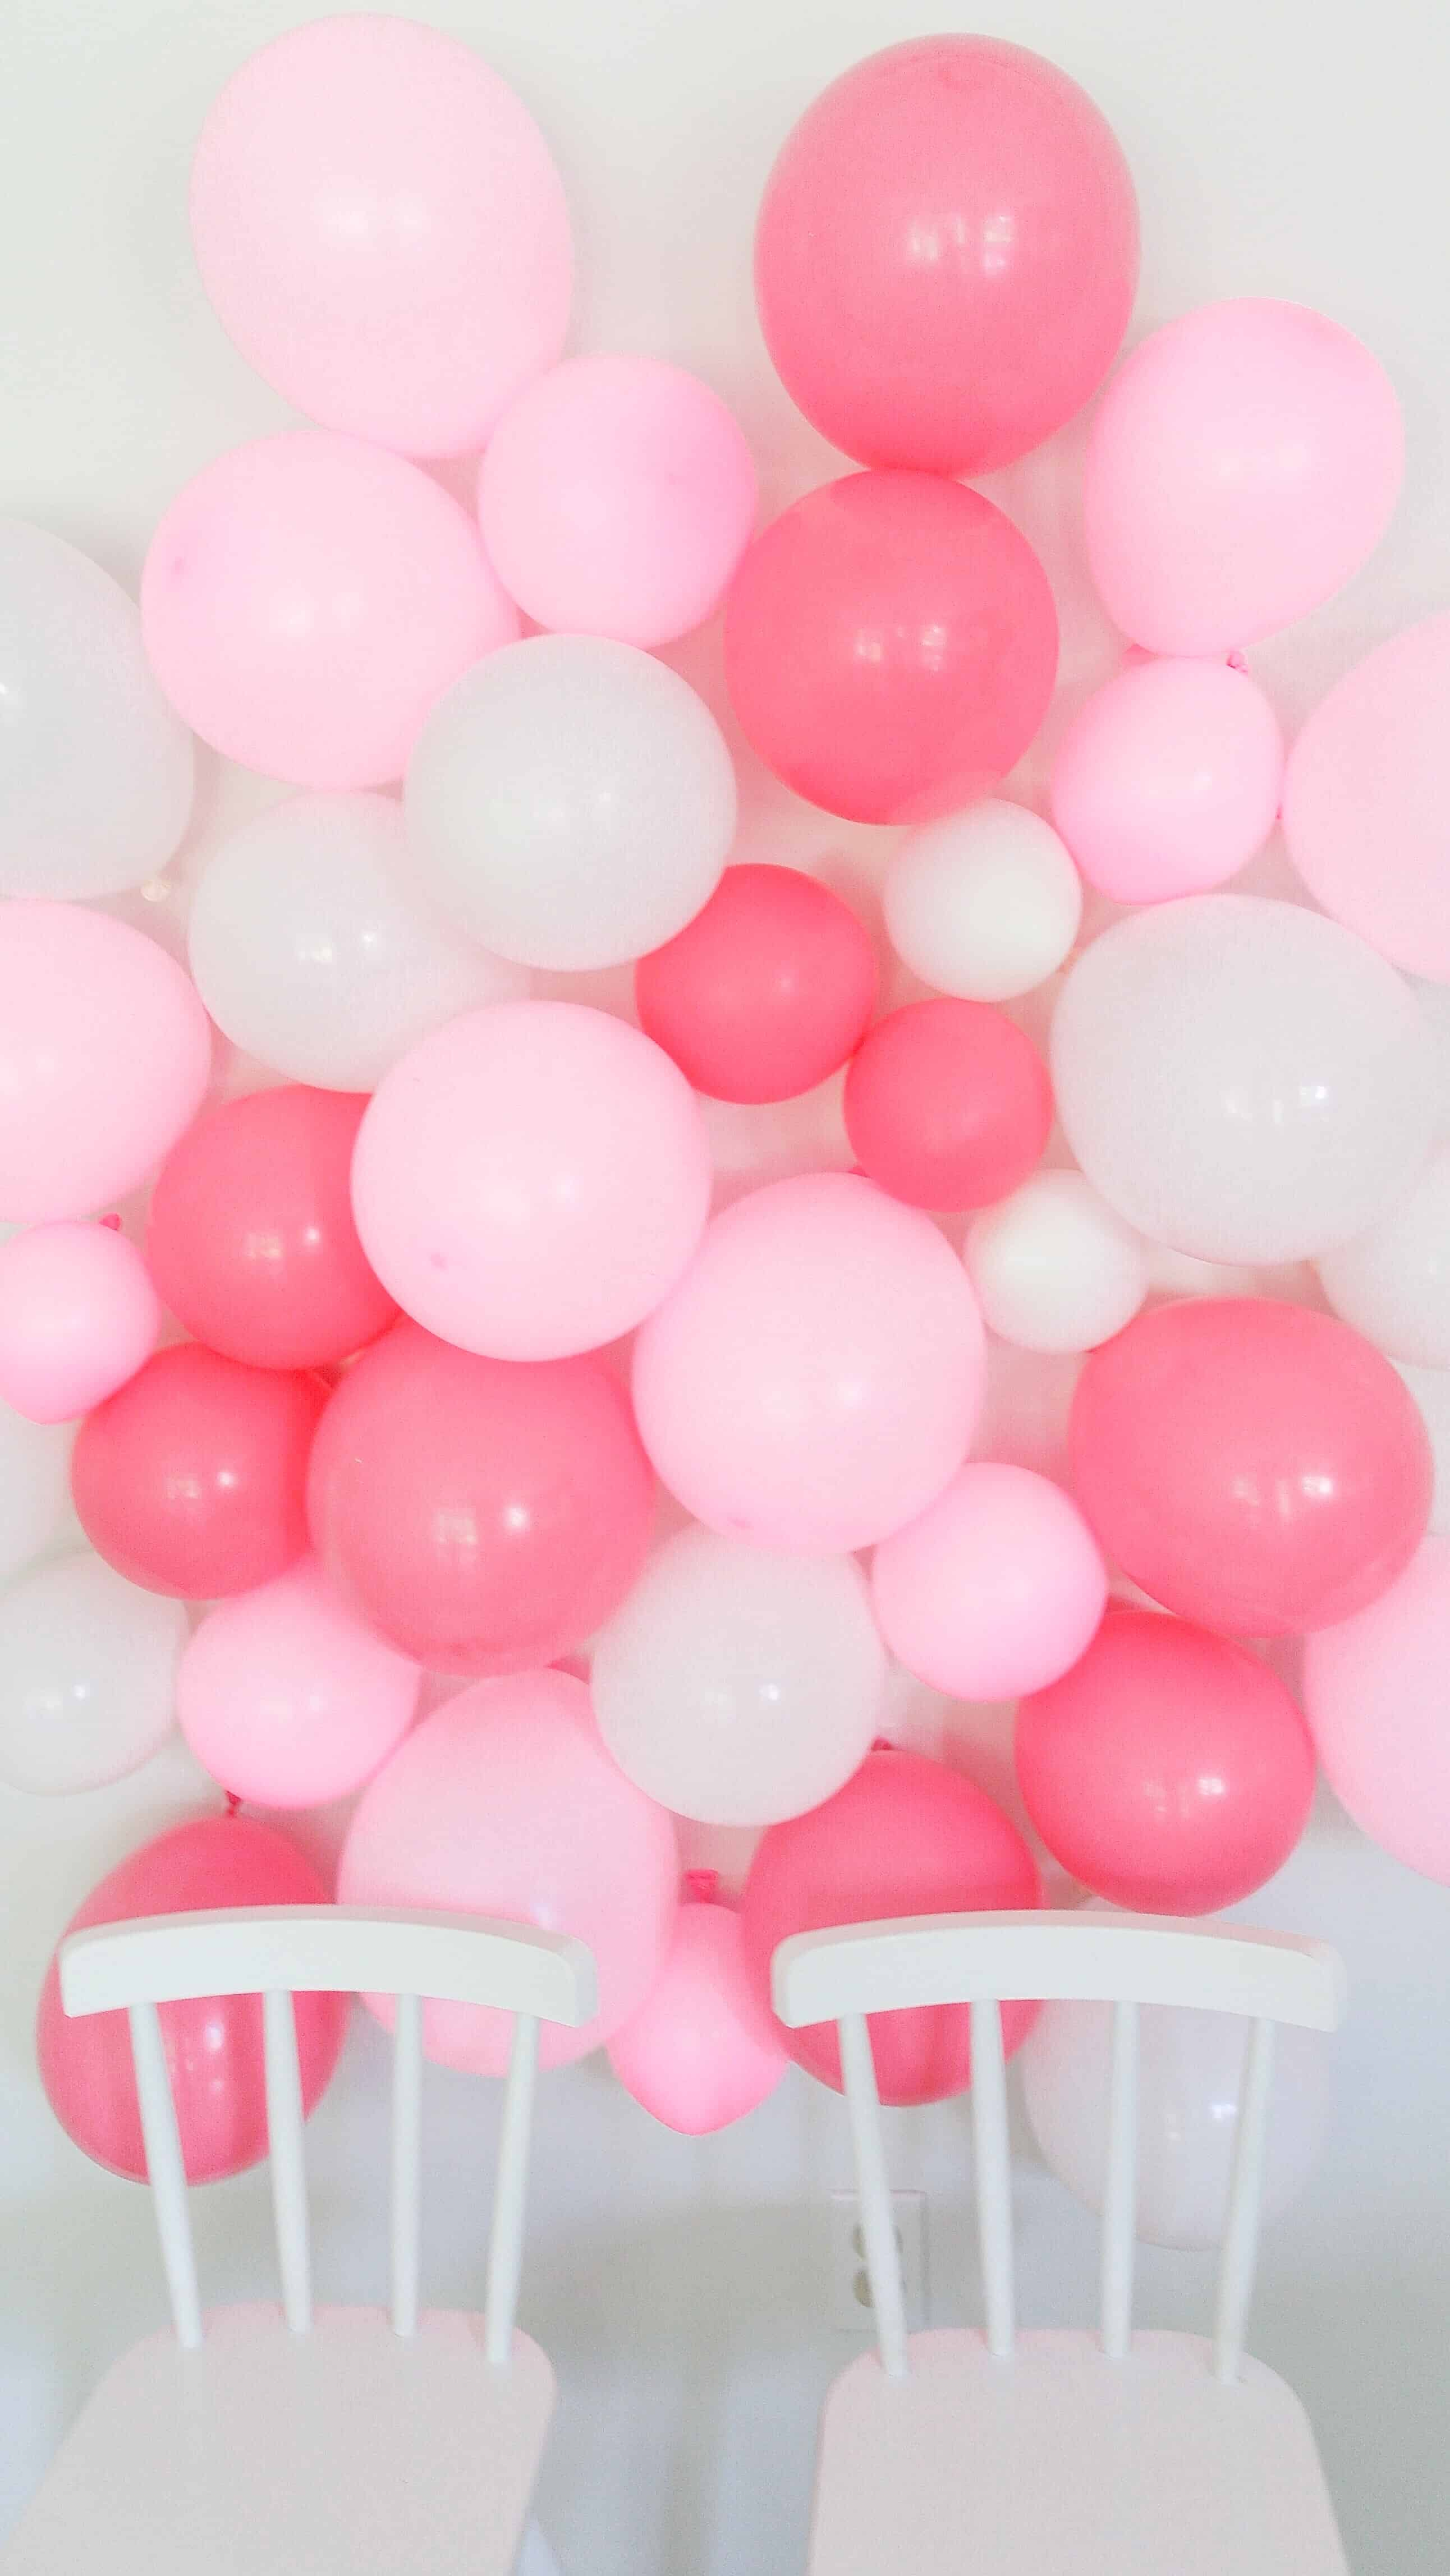 white chairs in front of white and pink DIY balloon wall